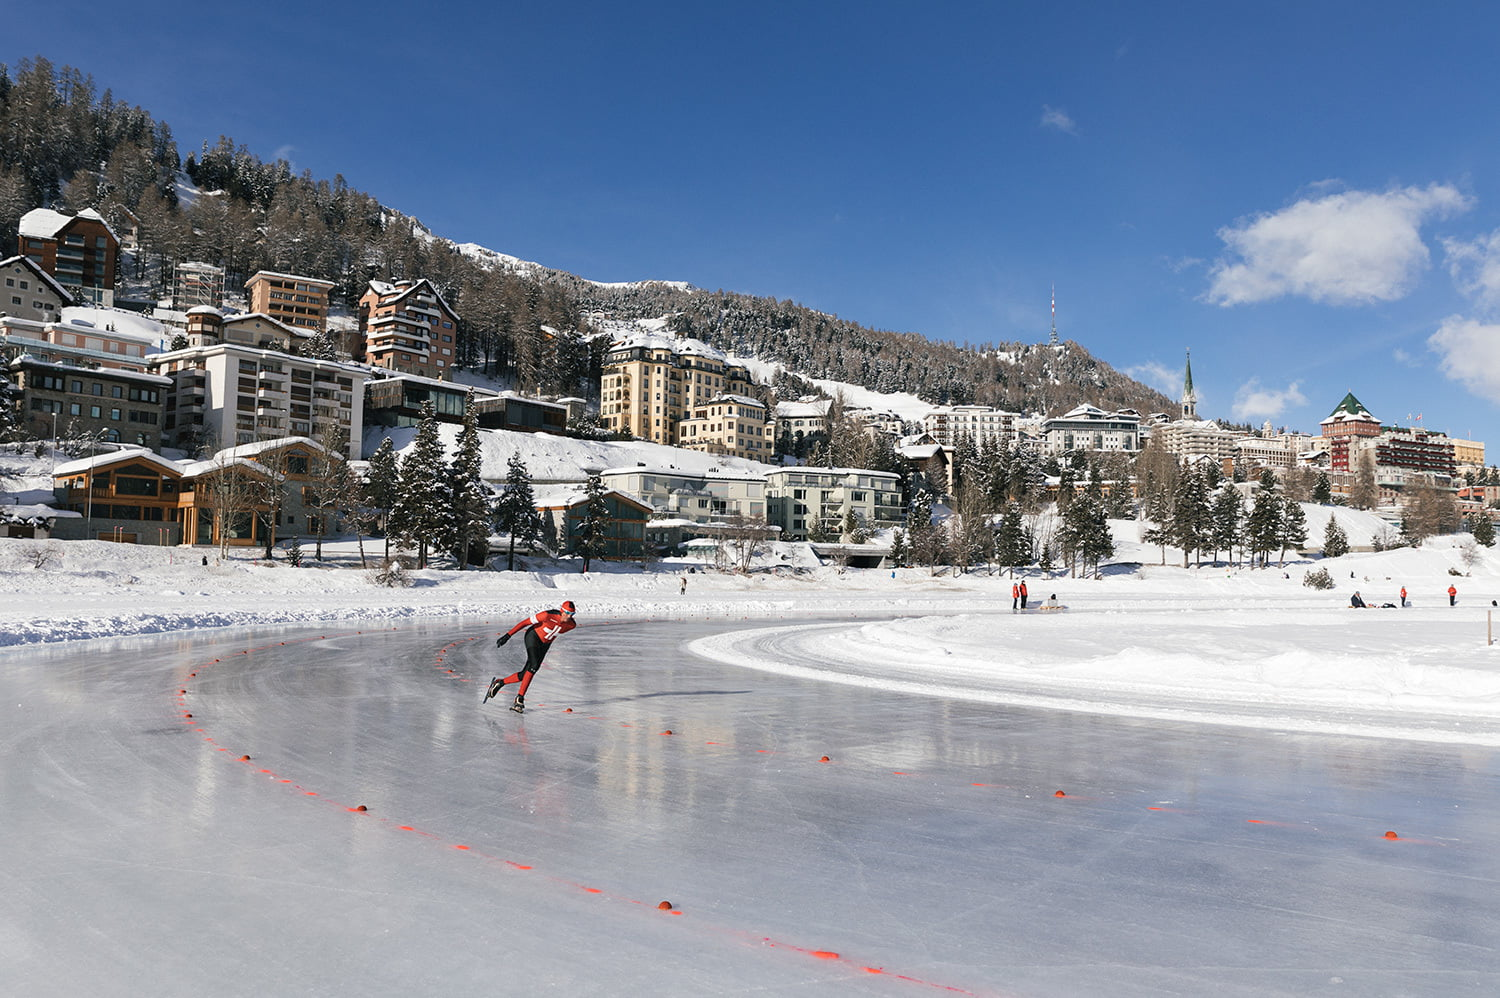 Ice Skating on the frozen Lake St. Moritz